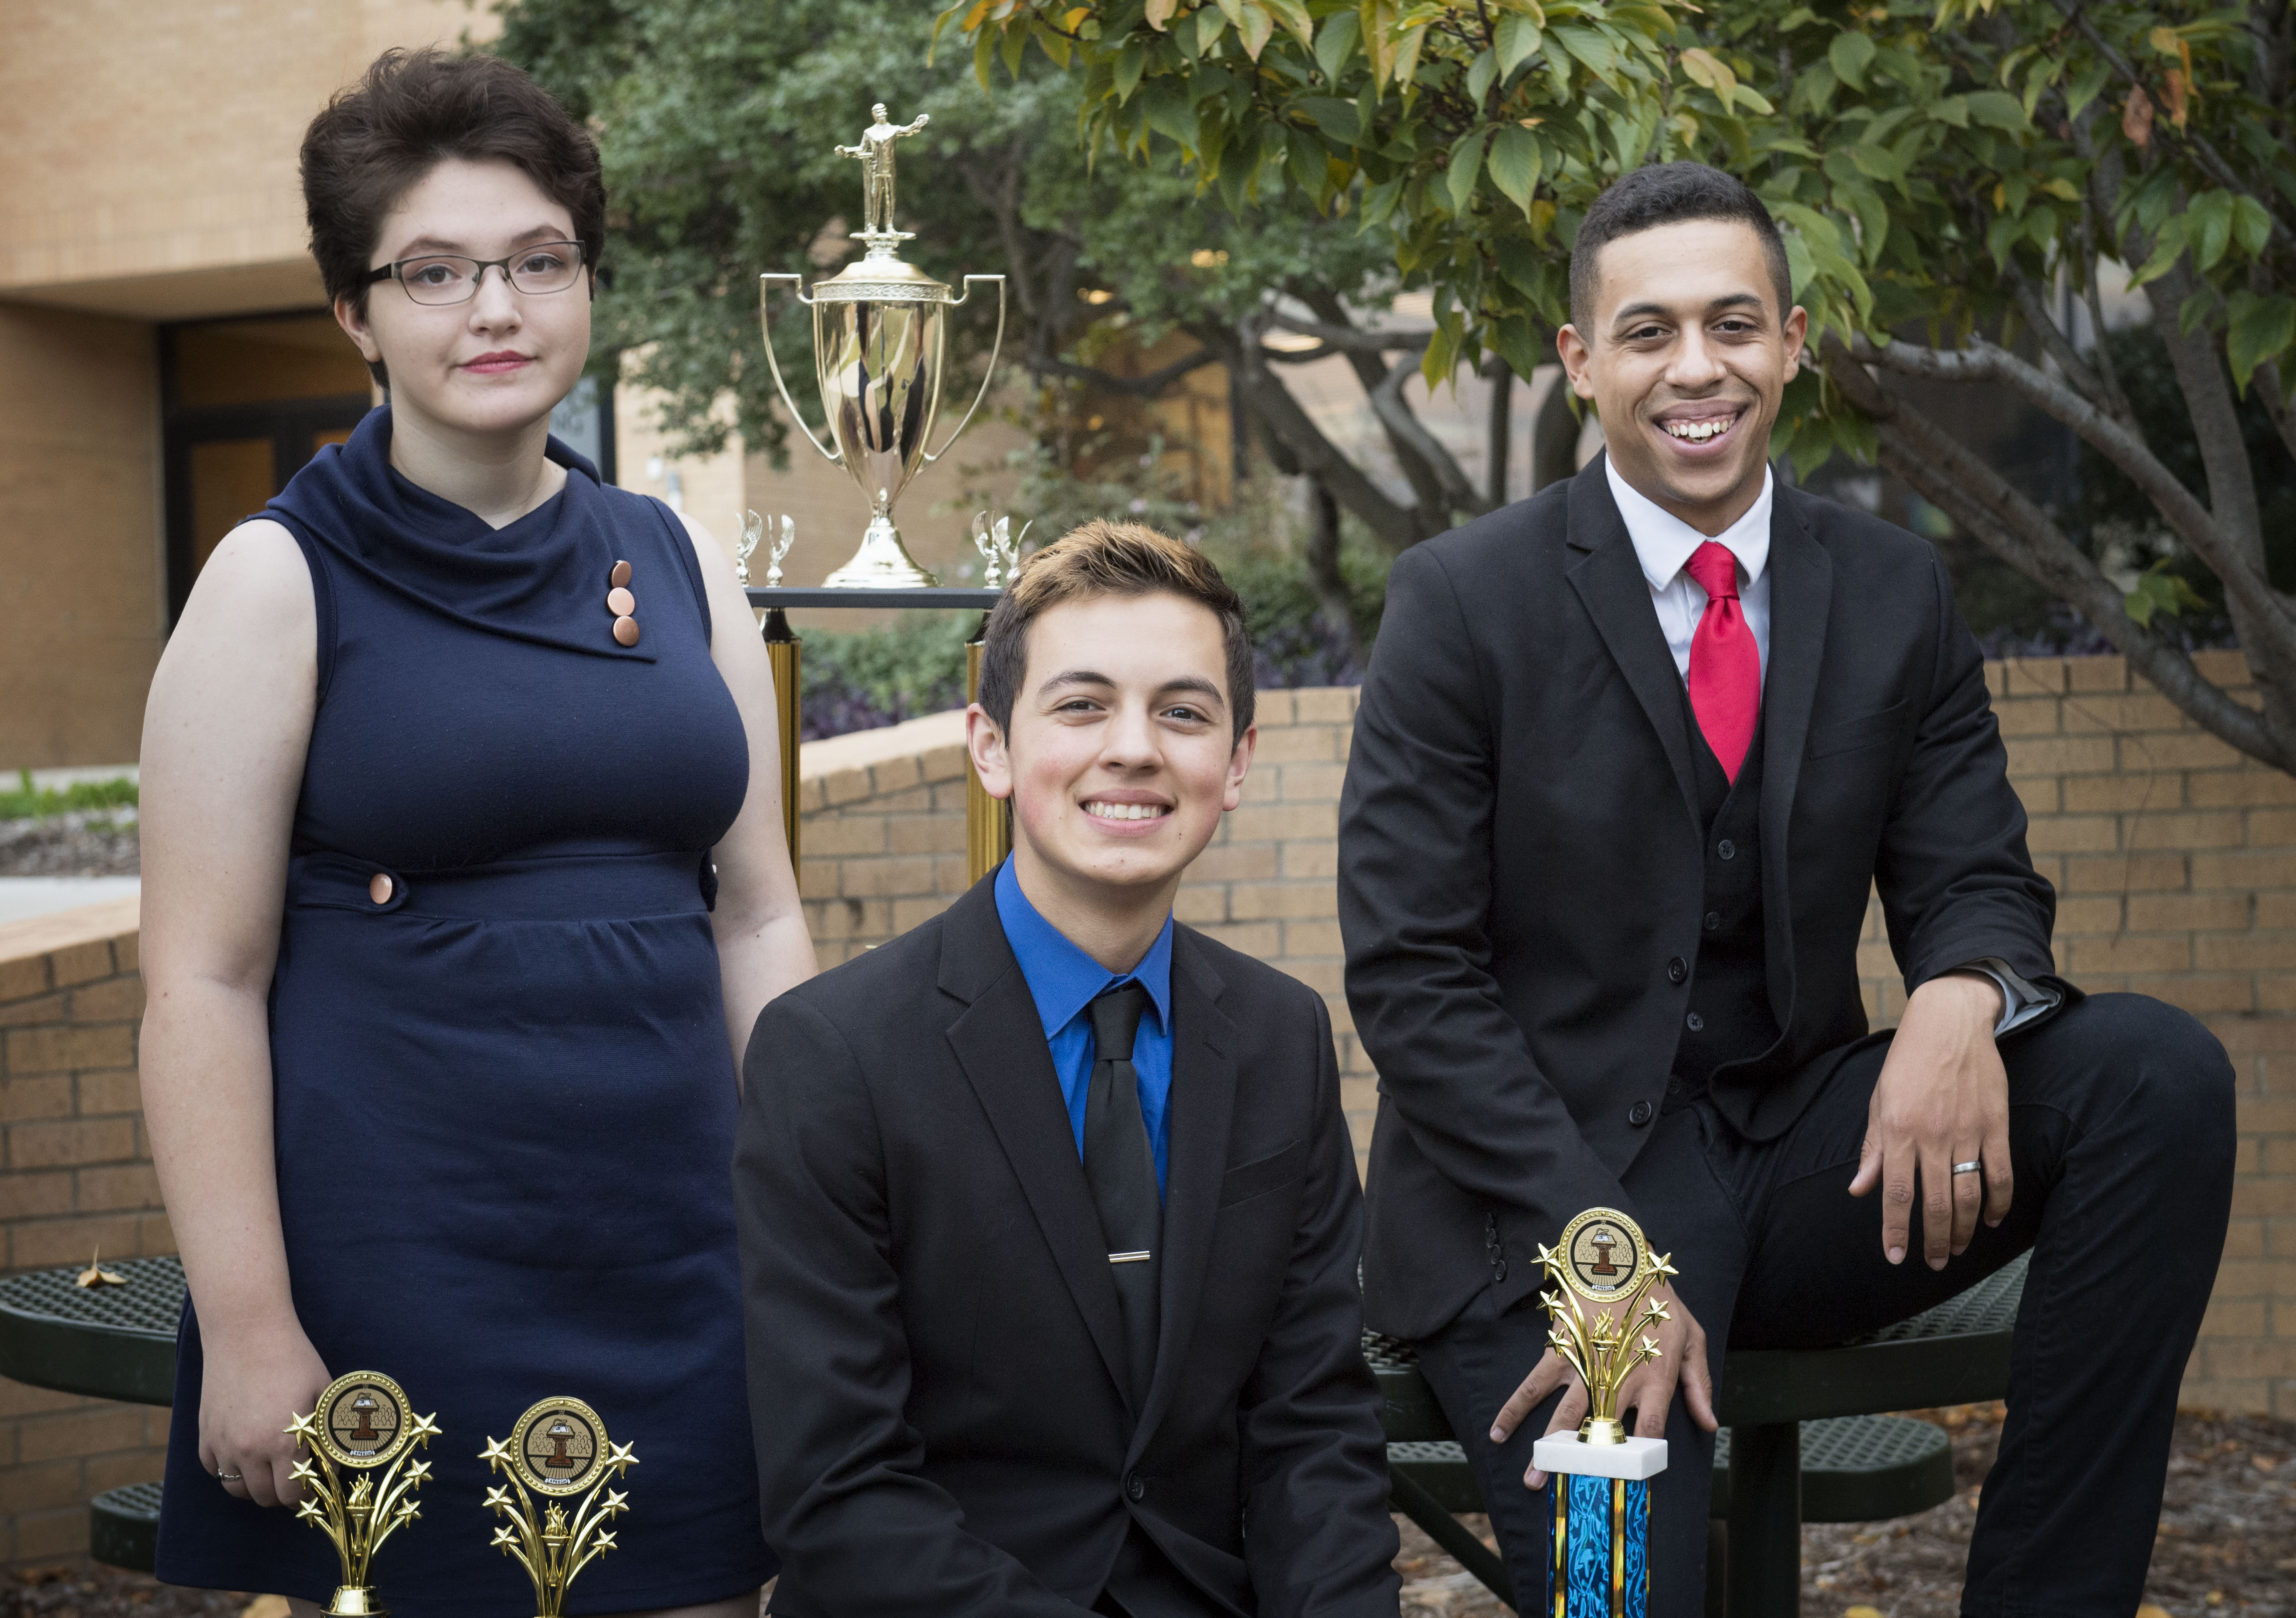 UNT debaters take top prize, win three divisions at Texas Intercollegiate Forensic Association Championship